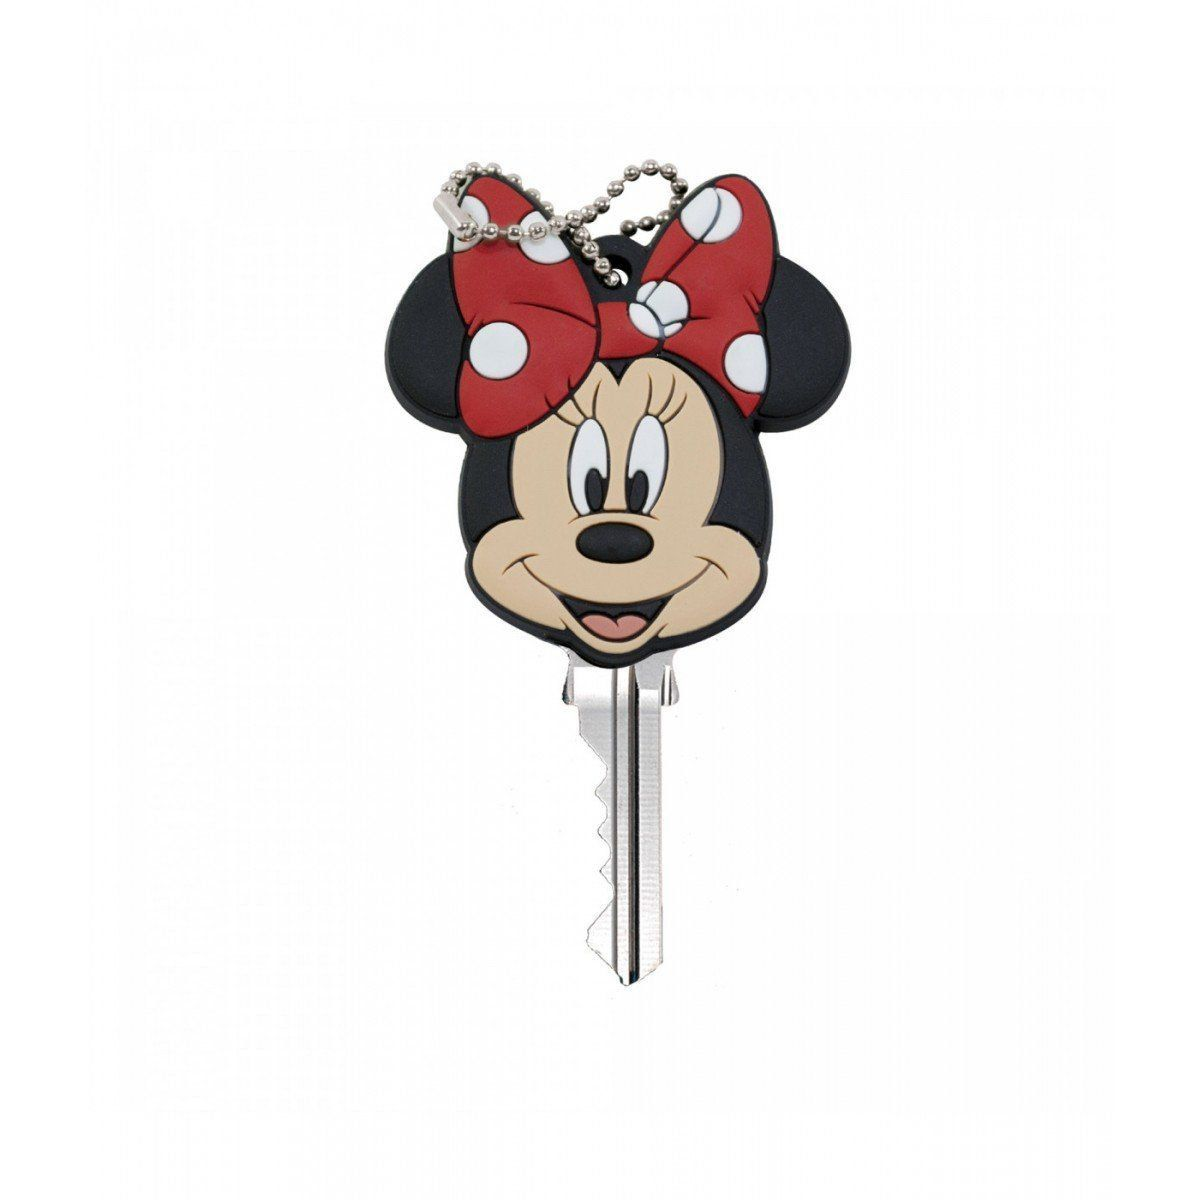 Capa para Chave Minnie Mouse - Disney